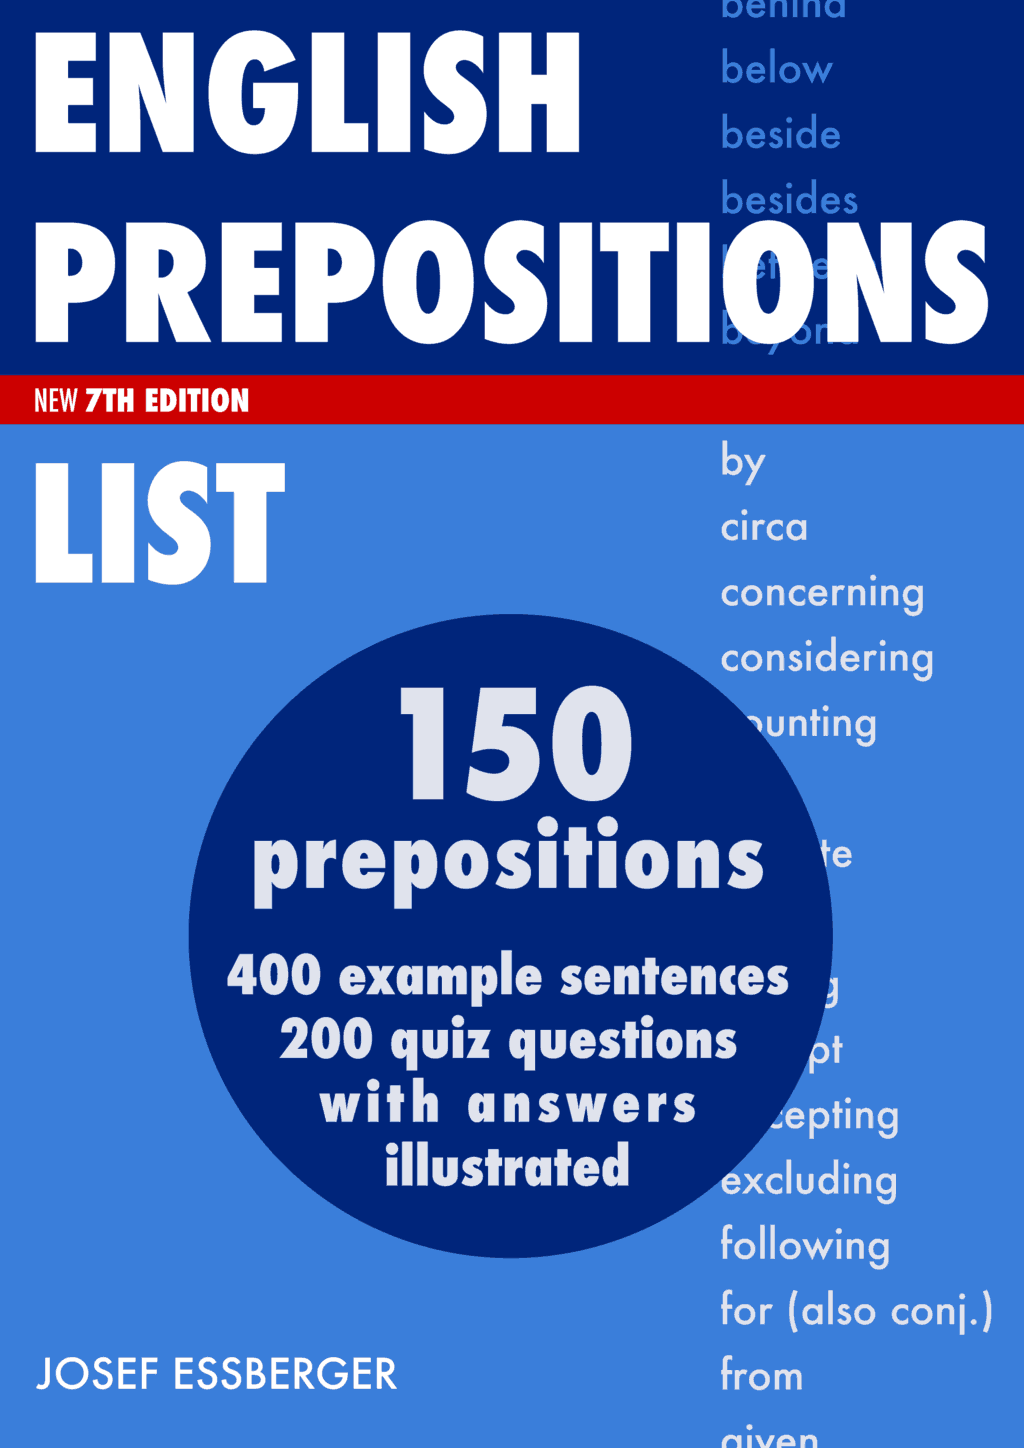 English prepositions list